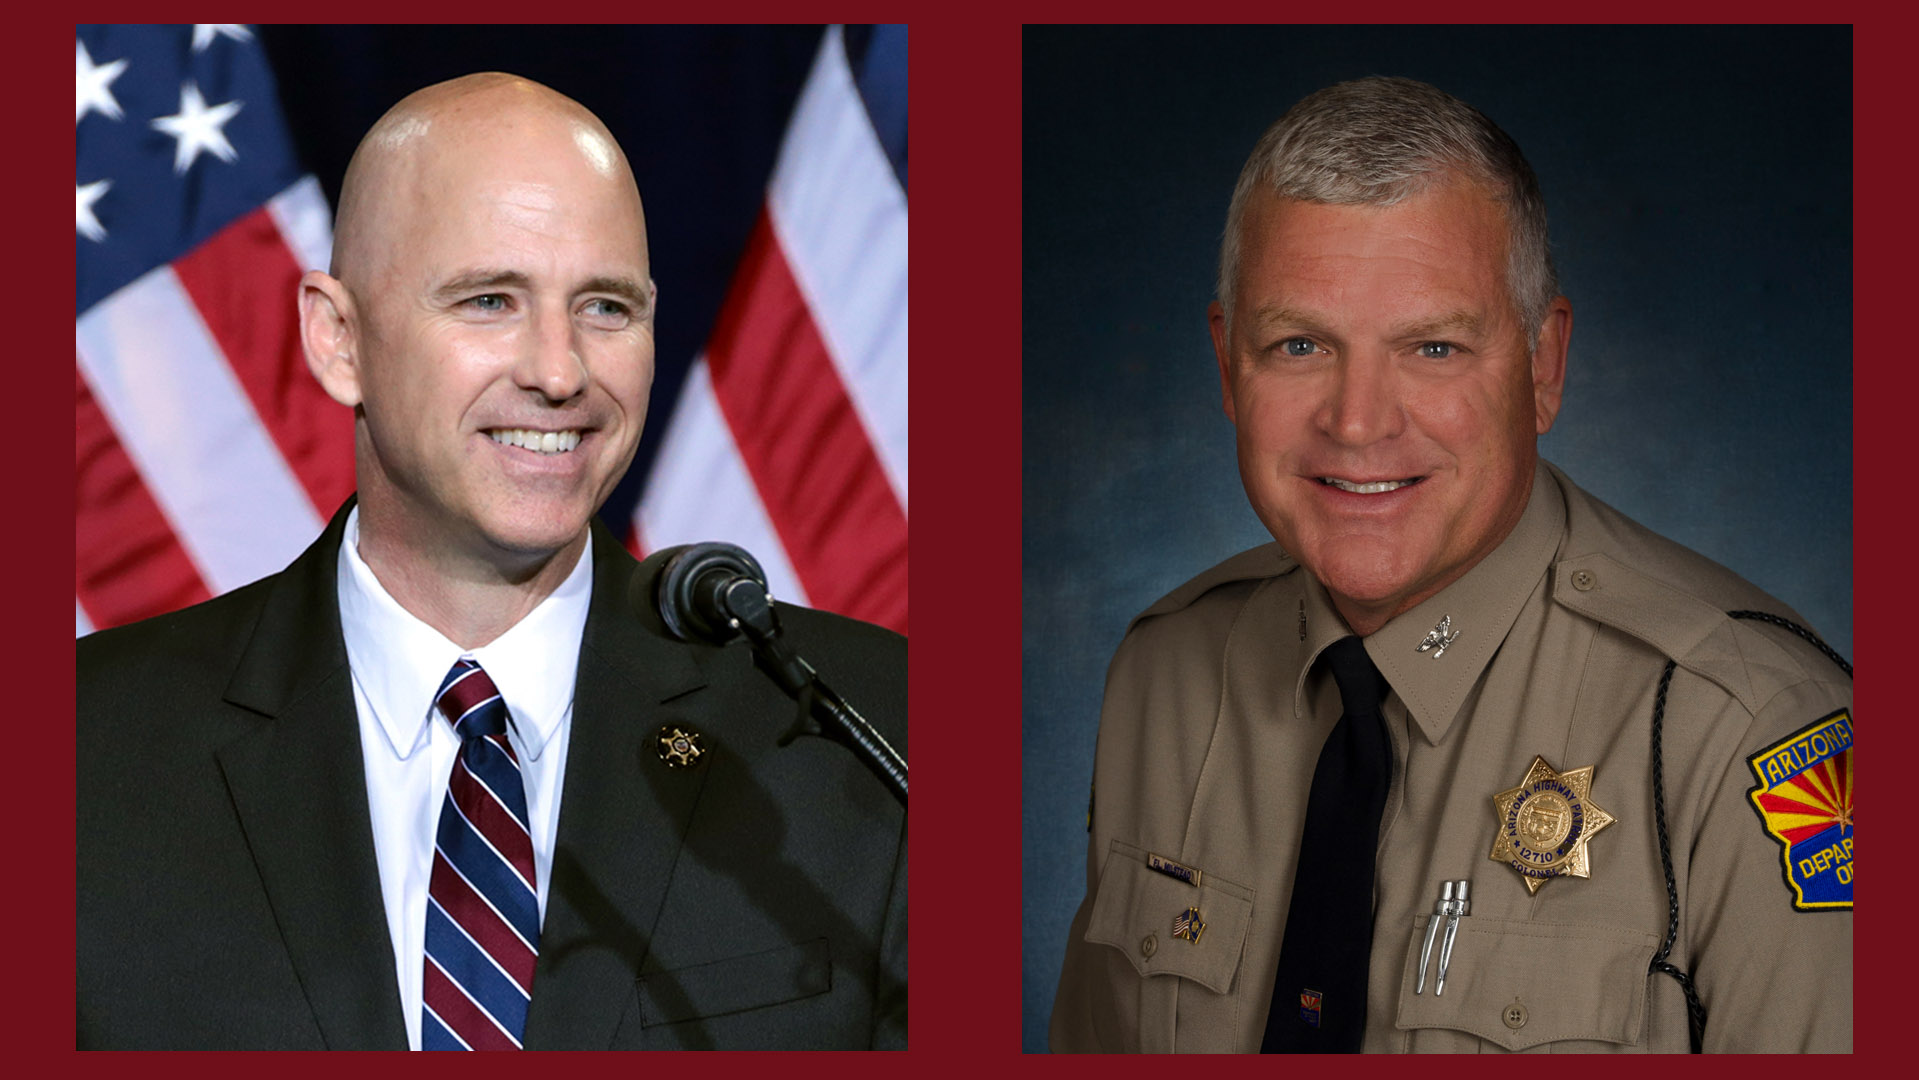 Paul Babeu (left) and Frank Milstead.